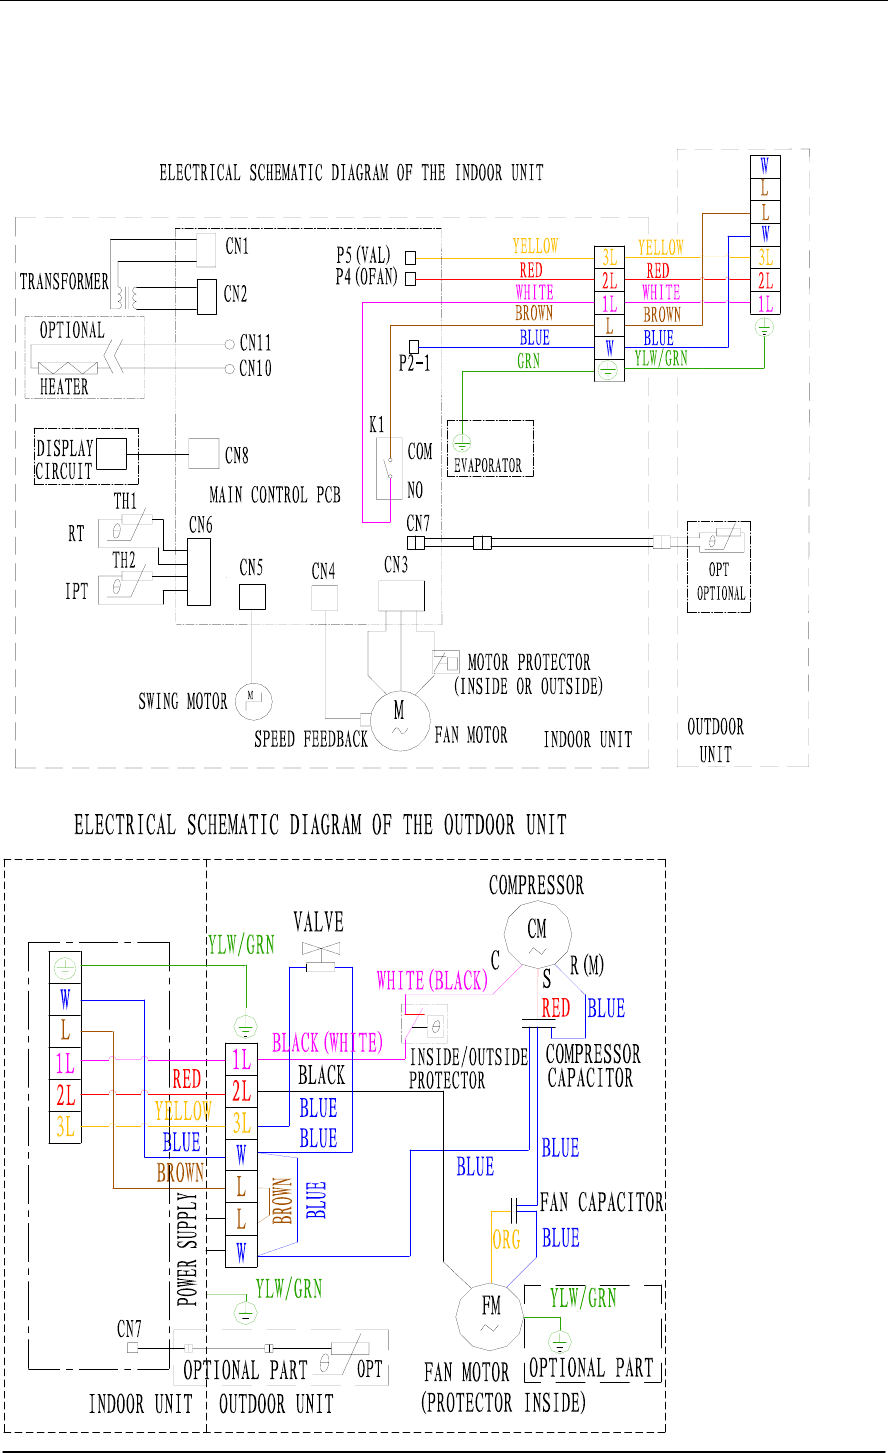 Tcl Air Conditioner Wiring Diagram Anything Diagrams Auto Conditioning Page 13 Of Soleus Kfthp 09 User Guide Rh Homeappliance Manualsonline Com Trane Hvac